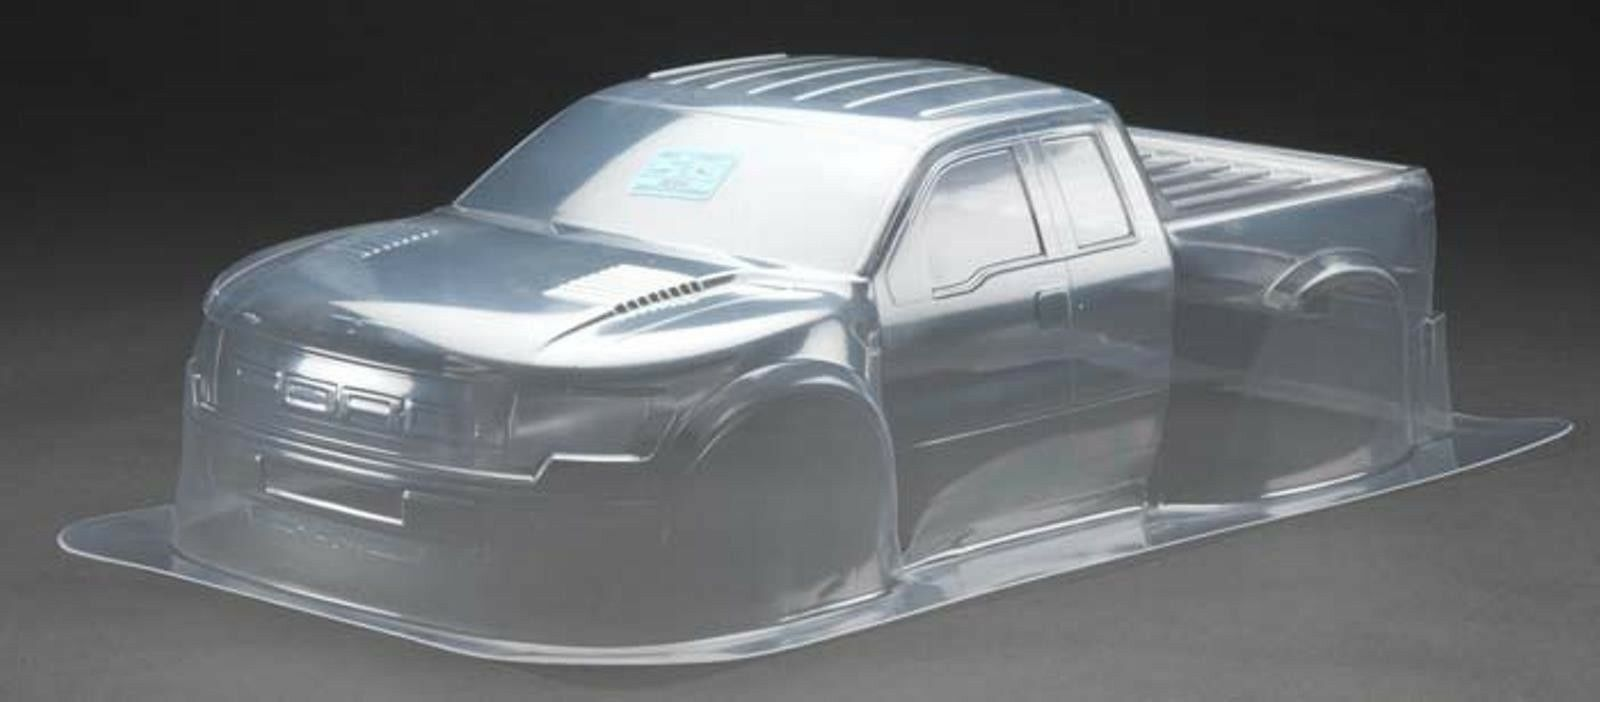 True Scale Ford F-150 Raptor SVT Clear Body by Pro-Line Pro-Line Pro-Line Racing 3389-00 355f53